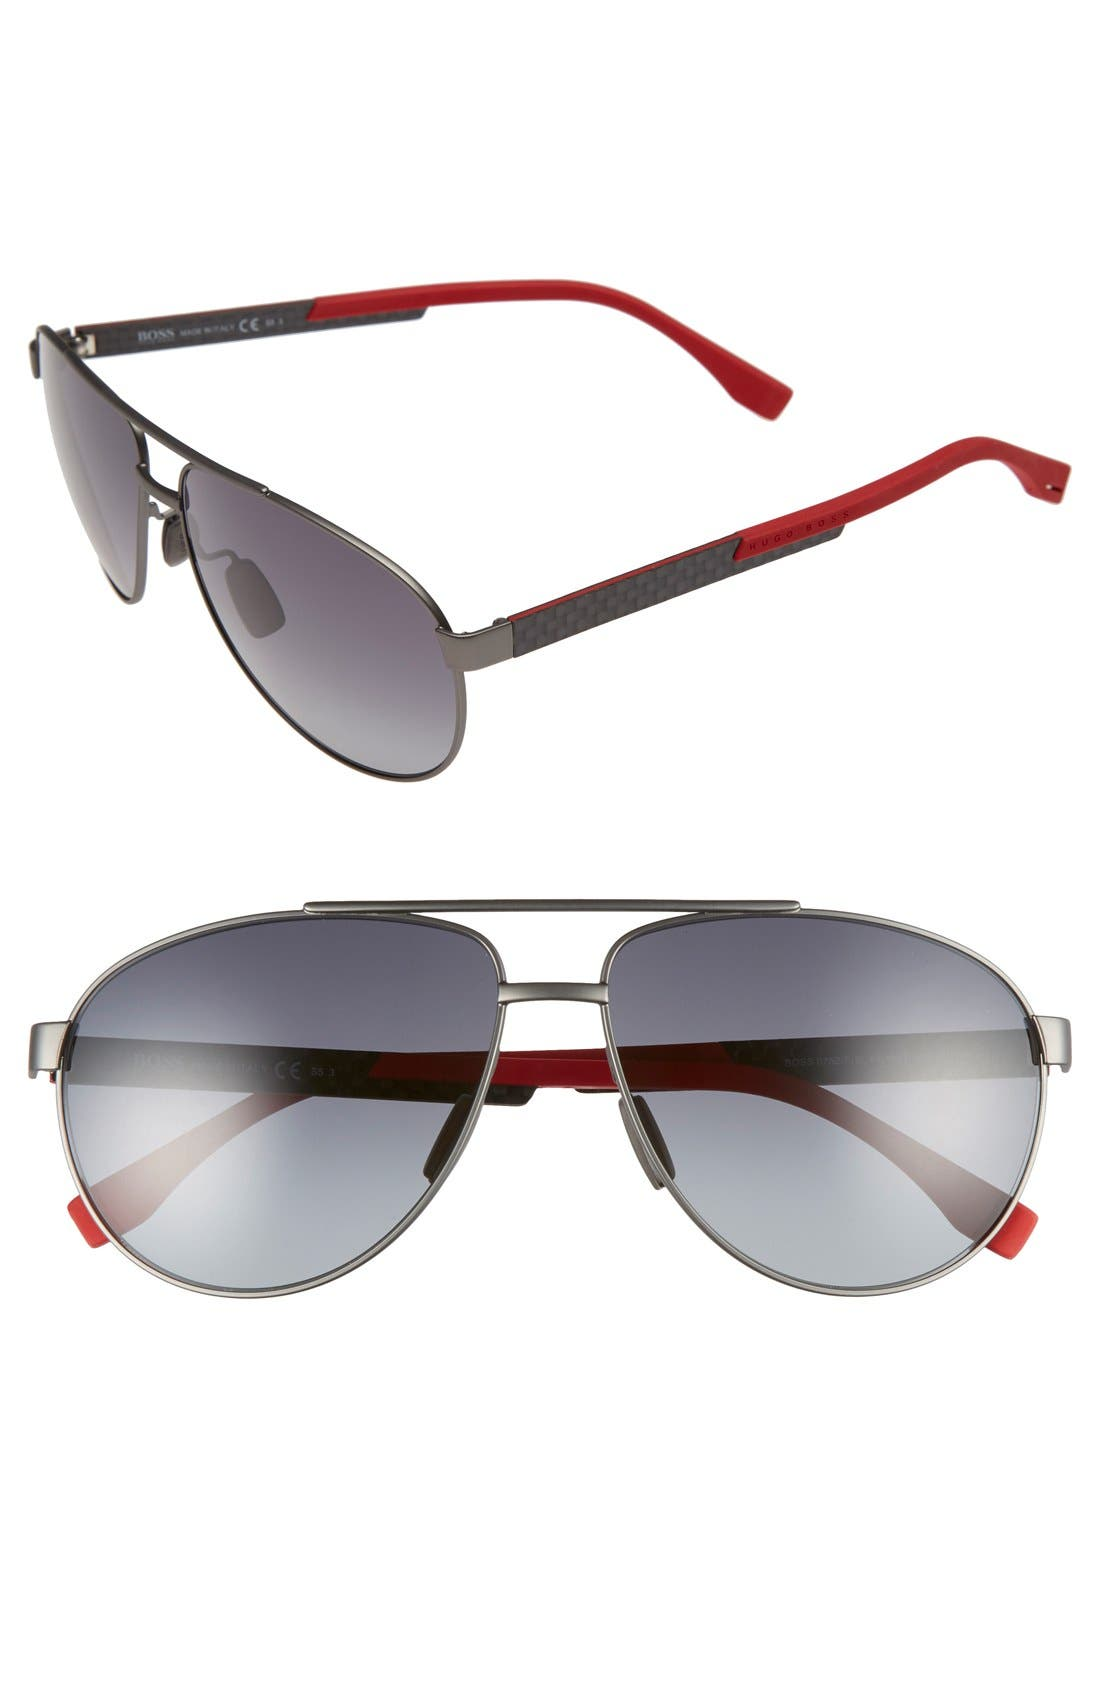 63mm Aviator Sunglasses,                         Main,                         color, Red Carbon/ Gray Gradient